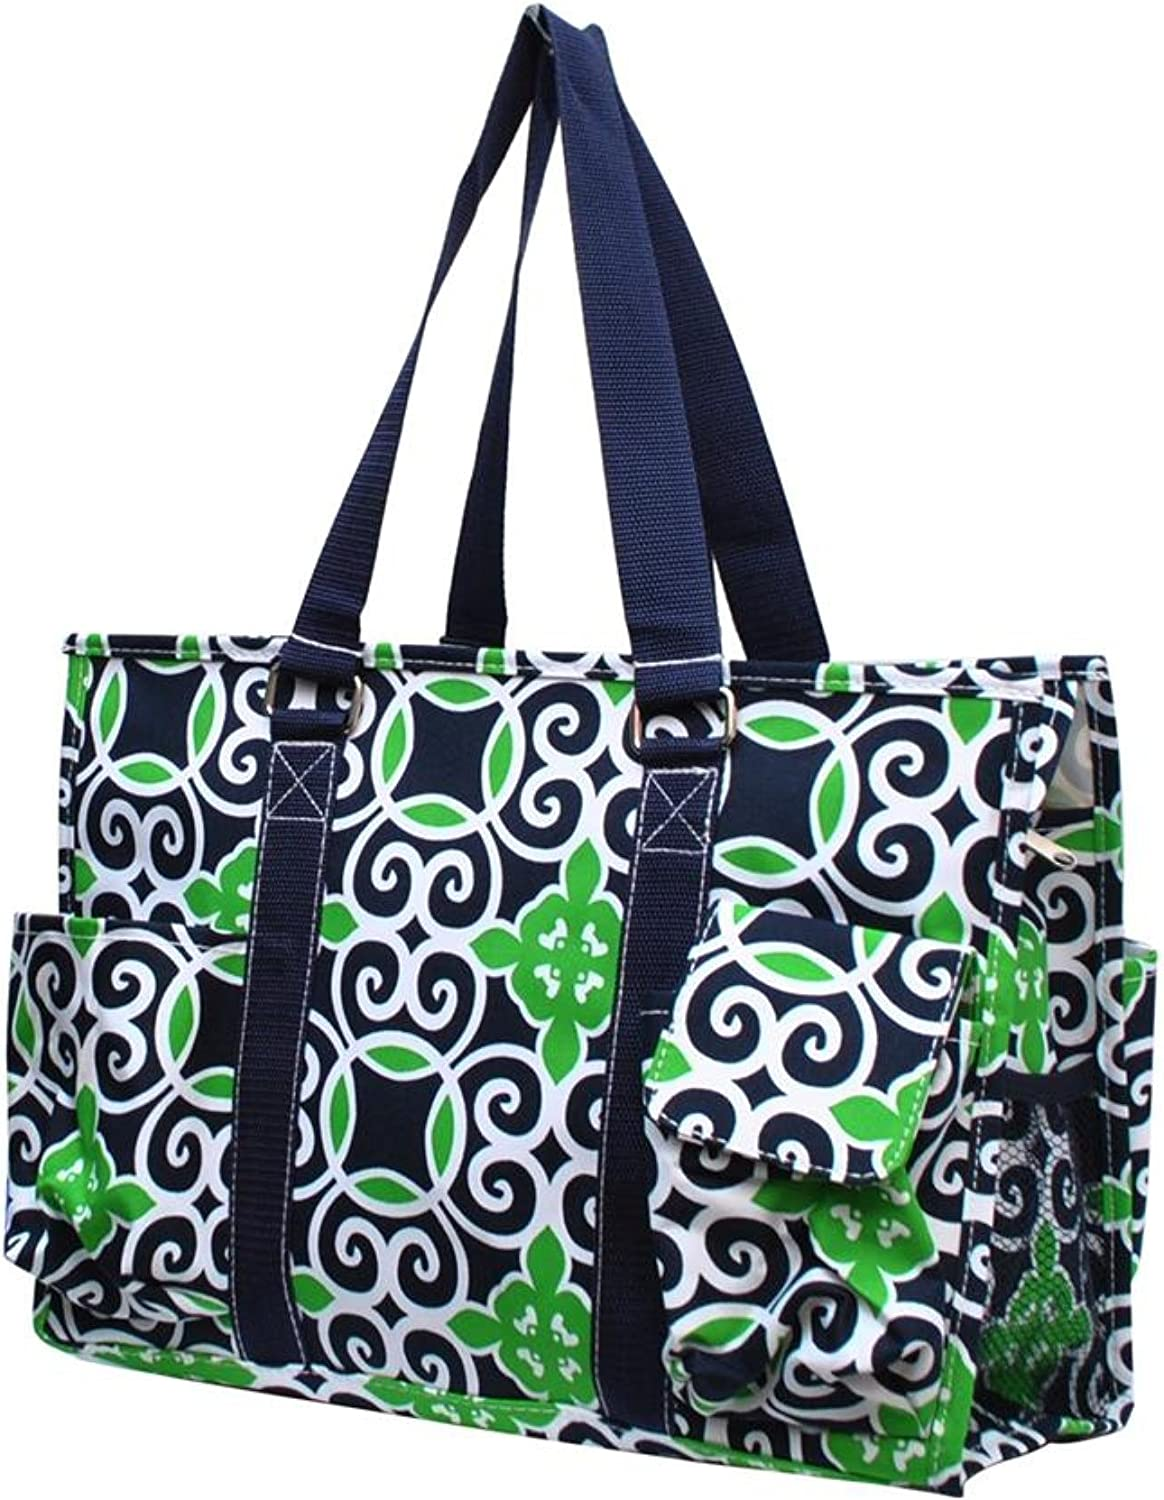 Ocean Themed Prints NGIL Travel Caddy Organizer Tote Bag (Geometric Sailor Print)